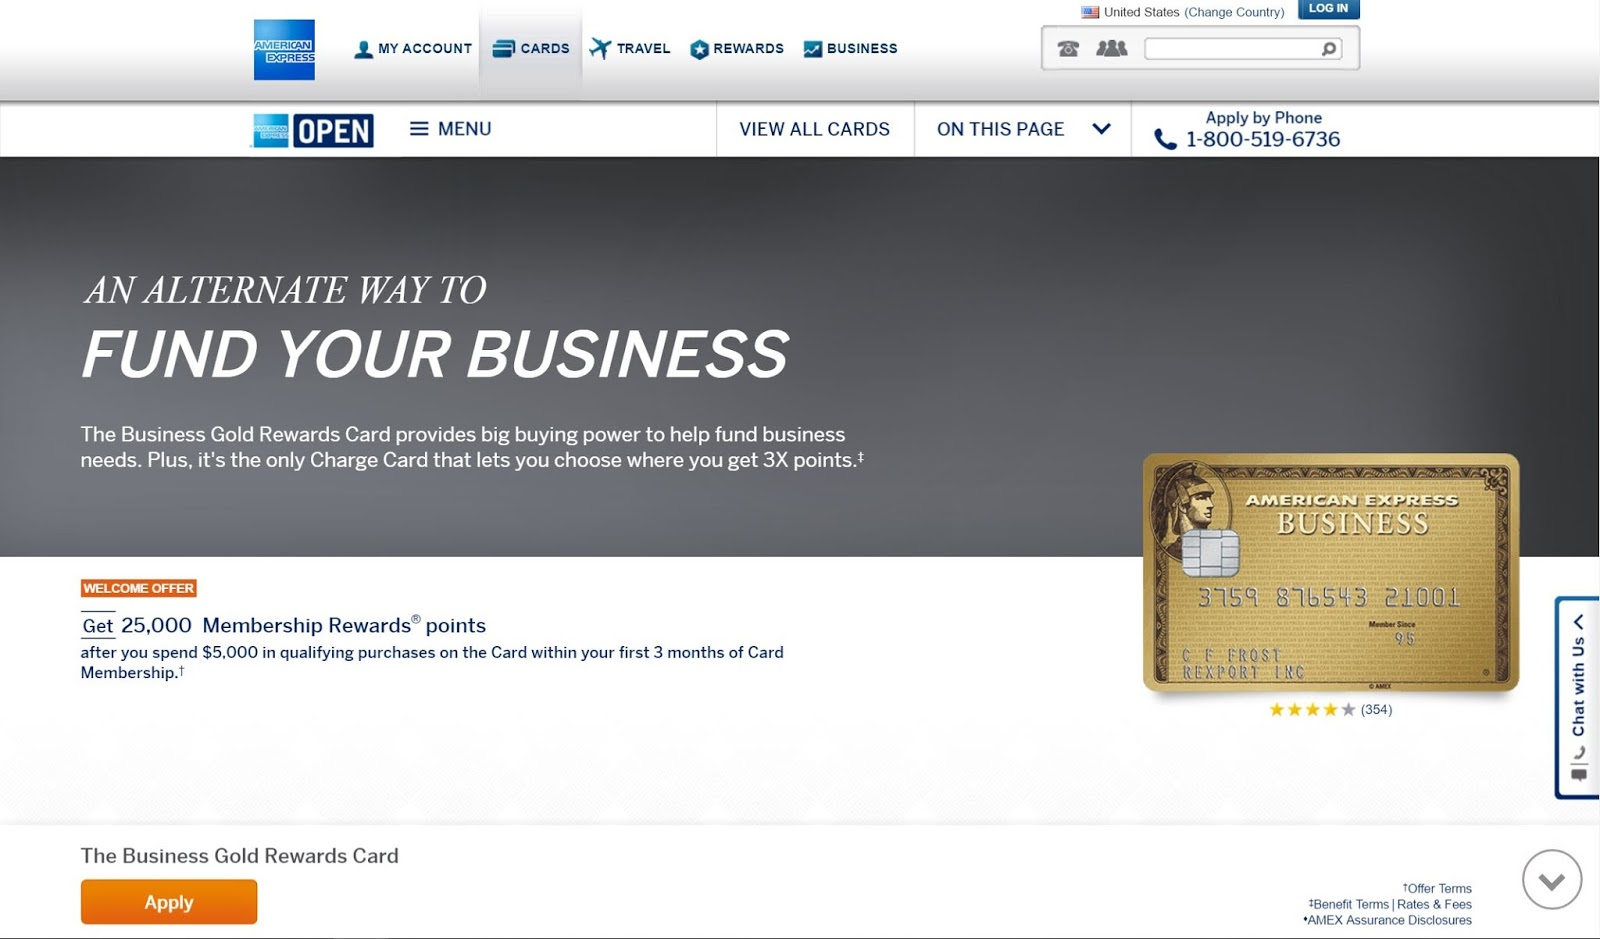 Flying from the front amex business gold rewards card 75k sign up bonus a short recap about what the amex business gold rewards card offers includes earning colourmoves